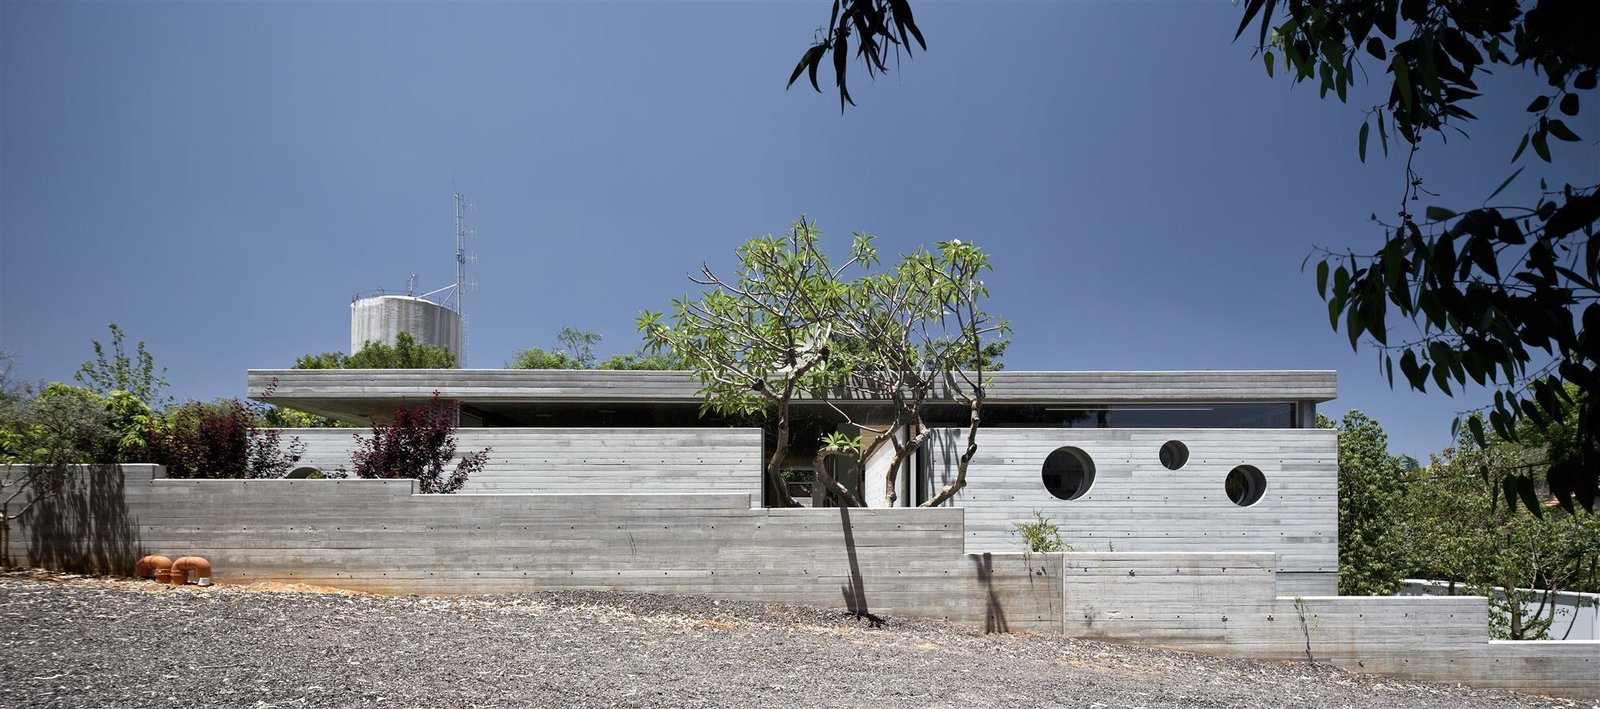 At the family home Israeli architect Pitsou Kedem, modern and light-filled interiors enliven a brutalist, raw concrete structure in the city of Ramat HaSharon near Tel Aviv.